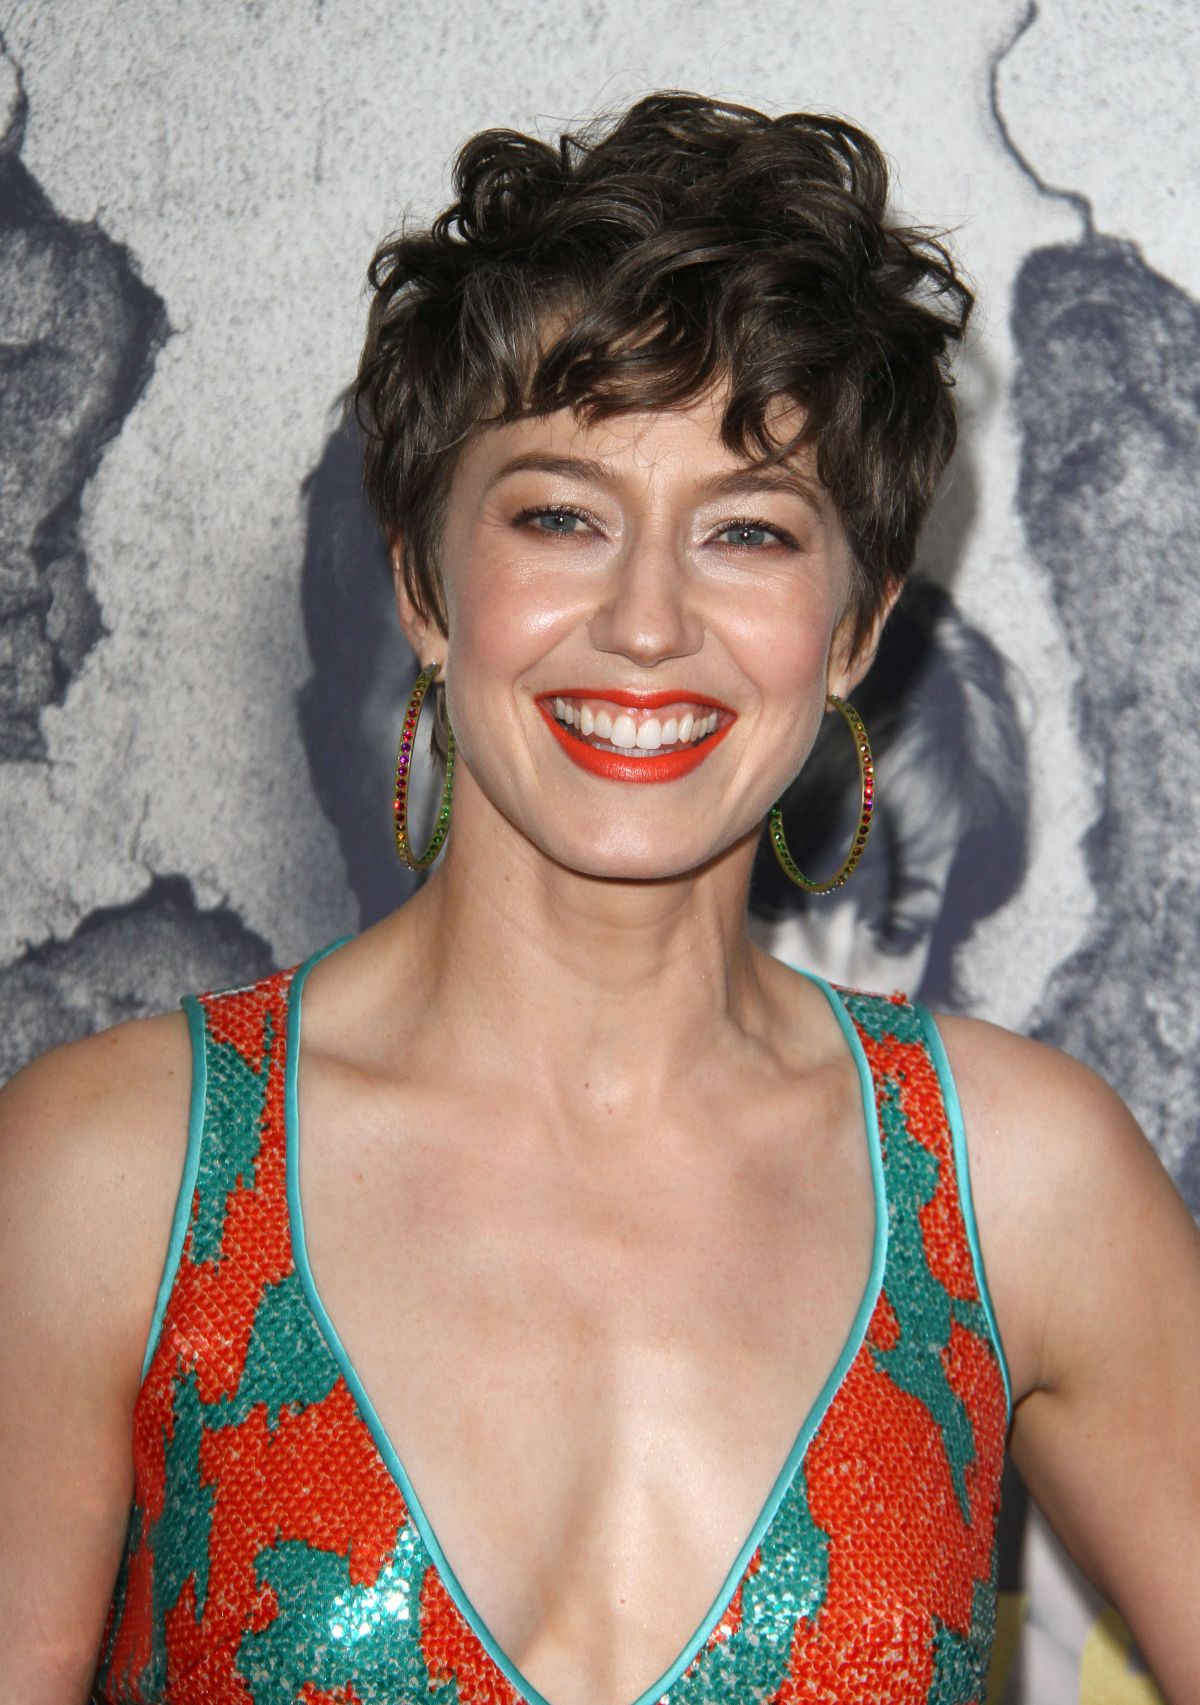 CARRIE COON at The Leftovers, Season 3 Premiere in Los Angeles 04/04/2017